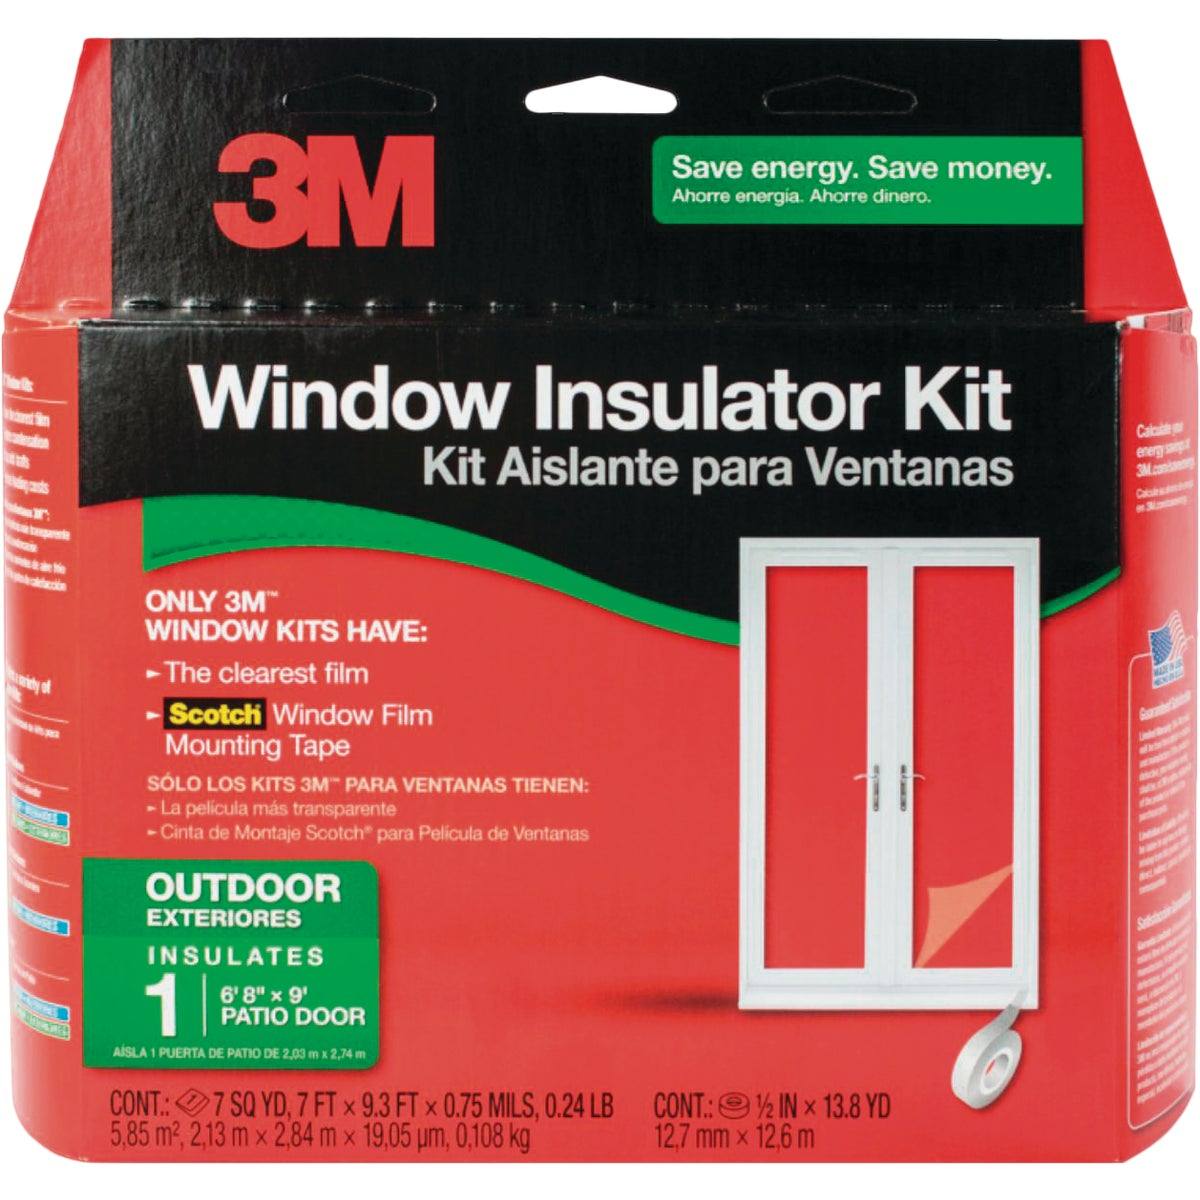 84X112 OTD INSULATOR KIT - 2174W-6 by 3m Co